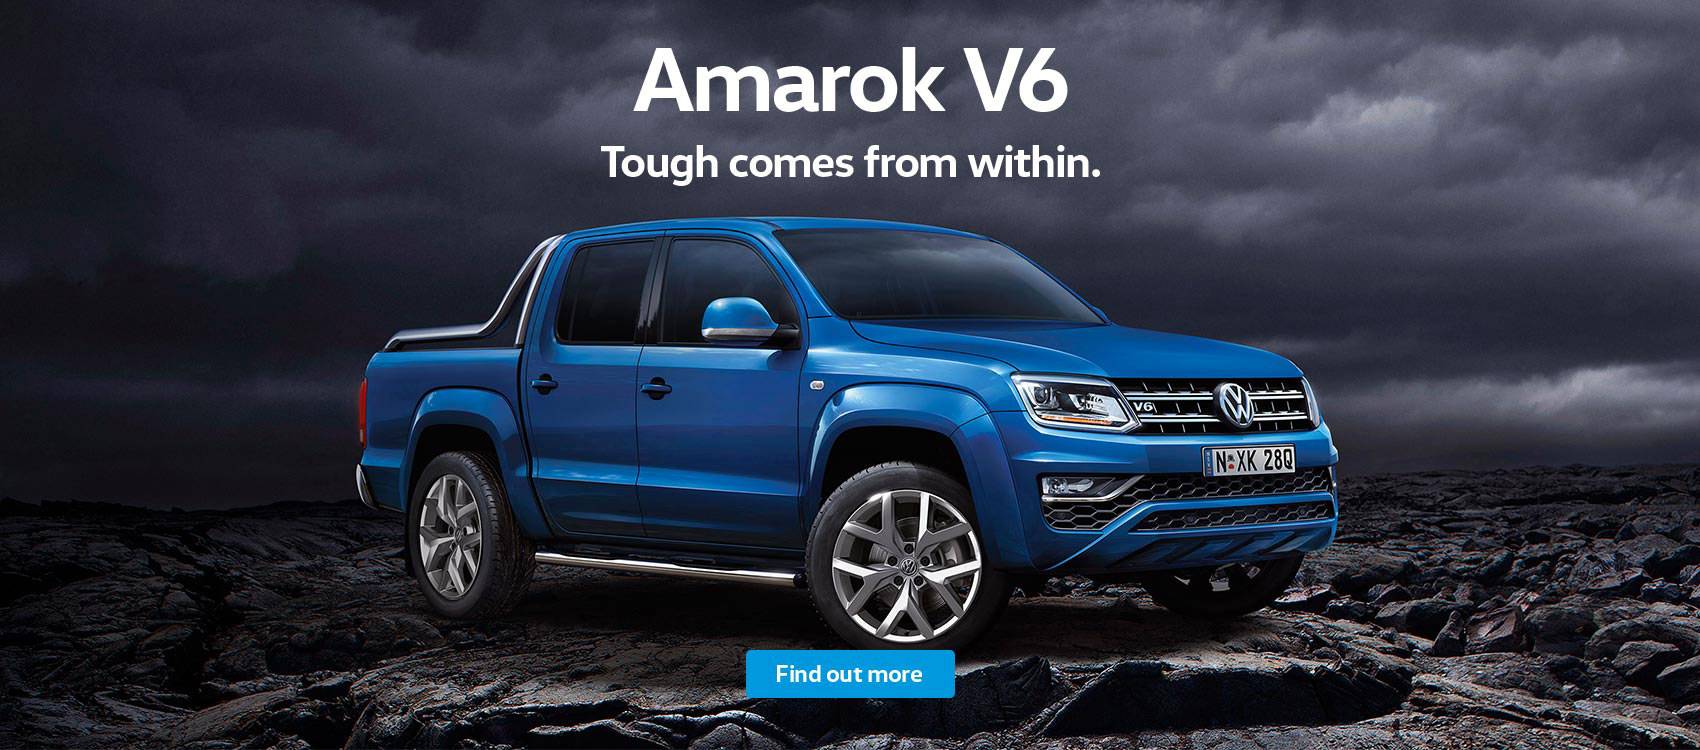 Volkswagen Amarok V6 - Touch comes from within. See NMG VW, your local Brisbane dealer.